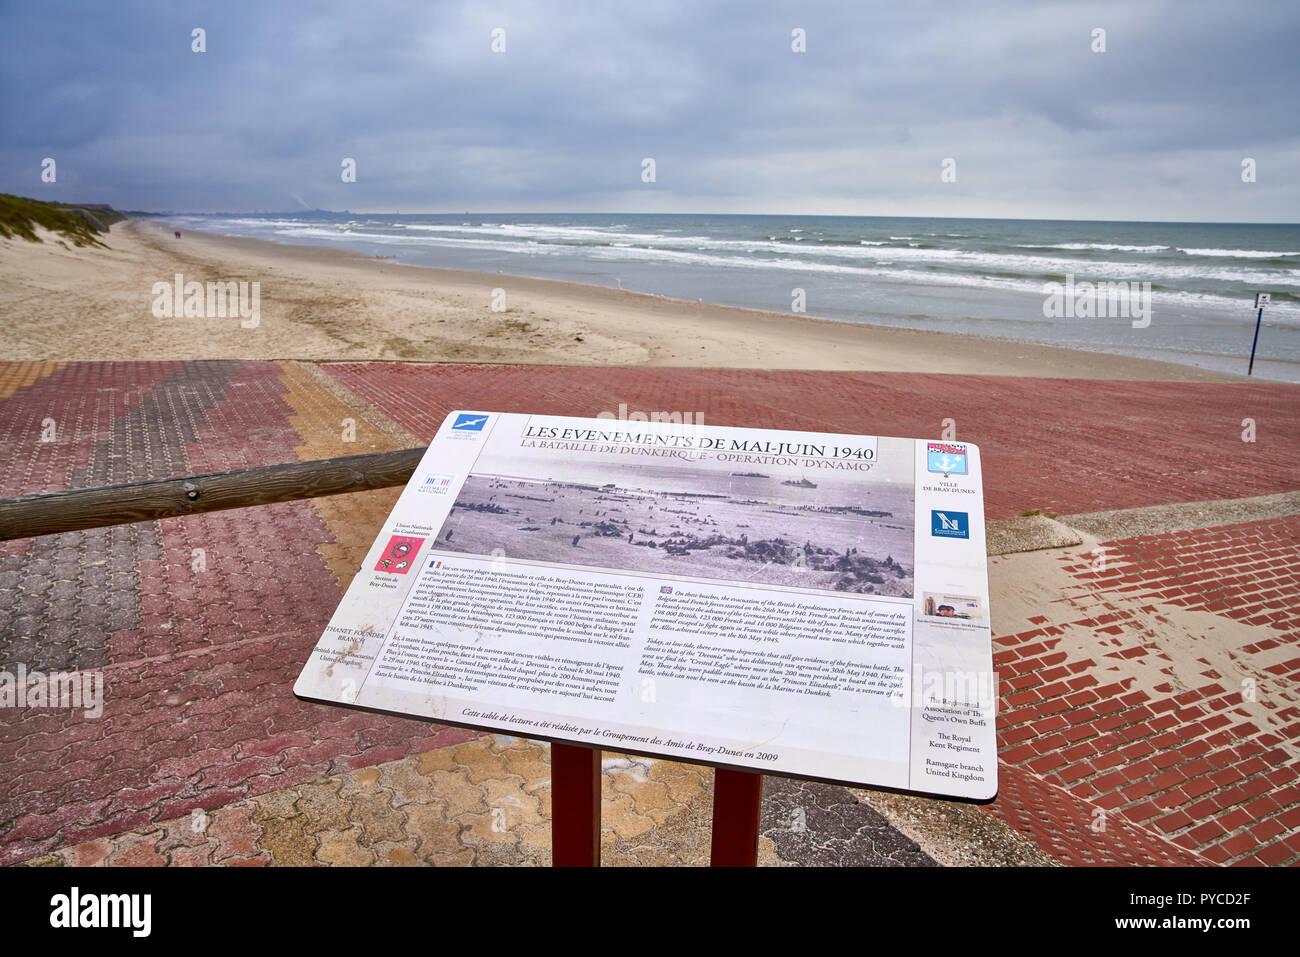 Bray Dunes at Dunkirk France, where many Allied soldiers waited for a boat home in 1940 - Stock Image